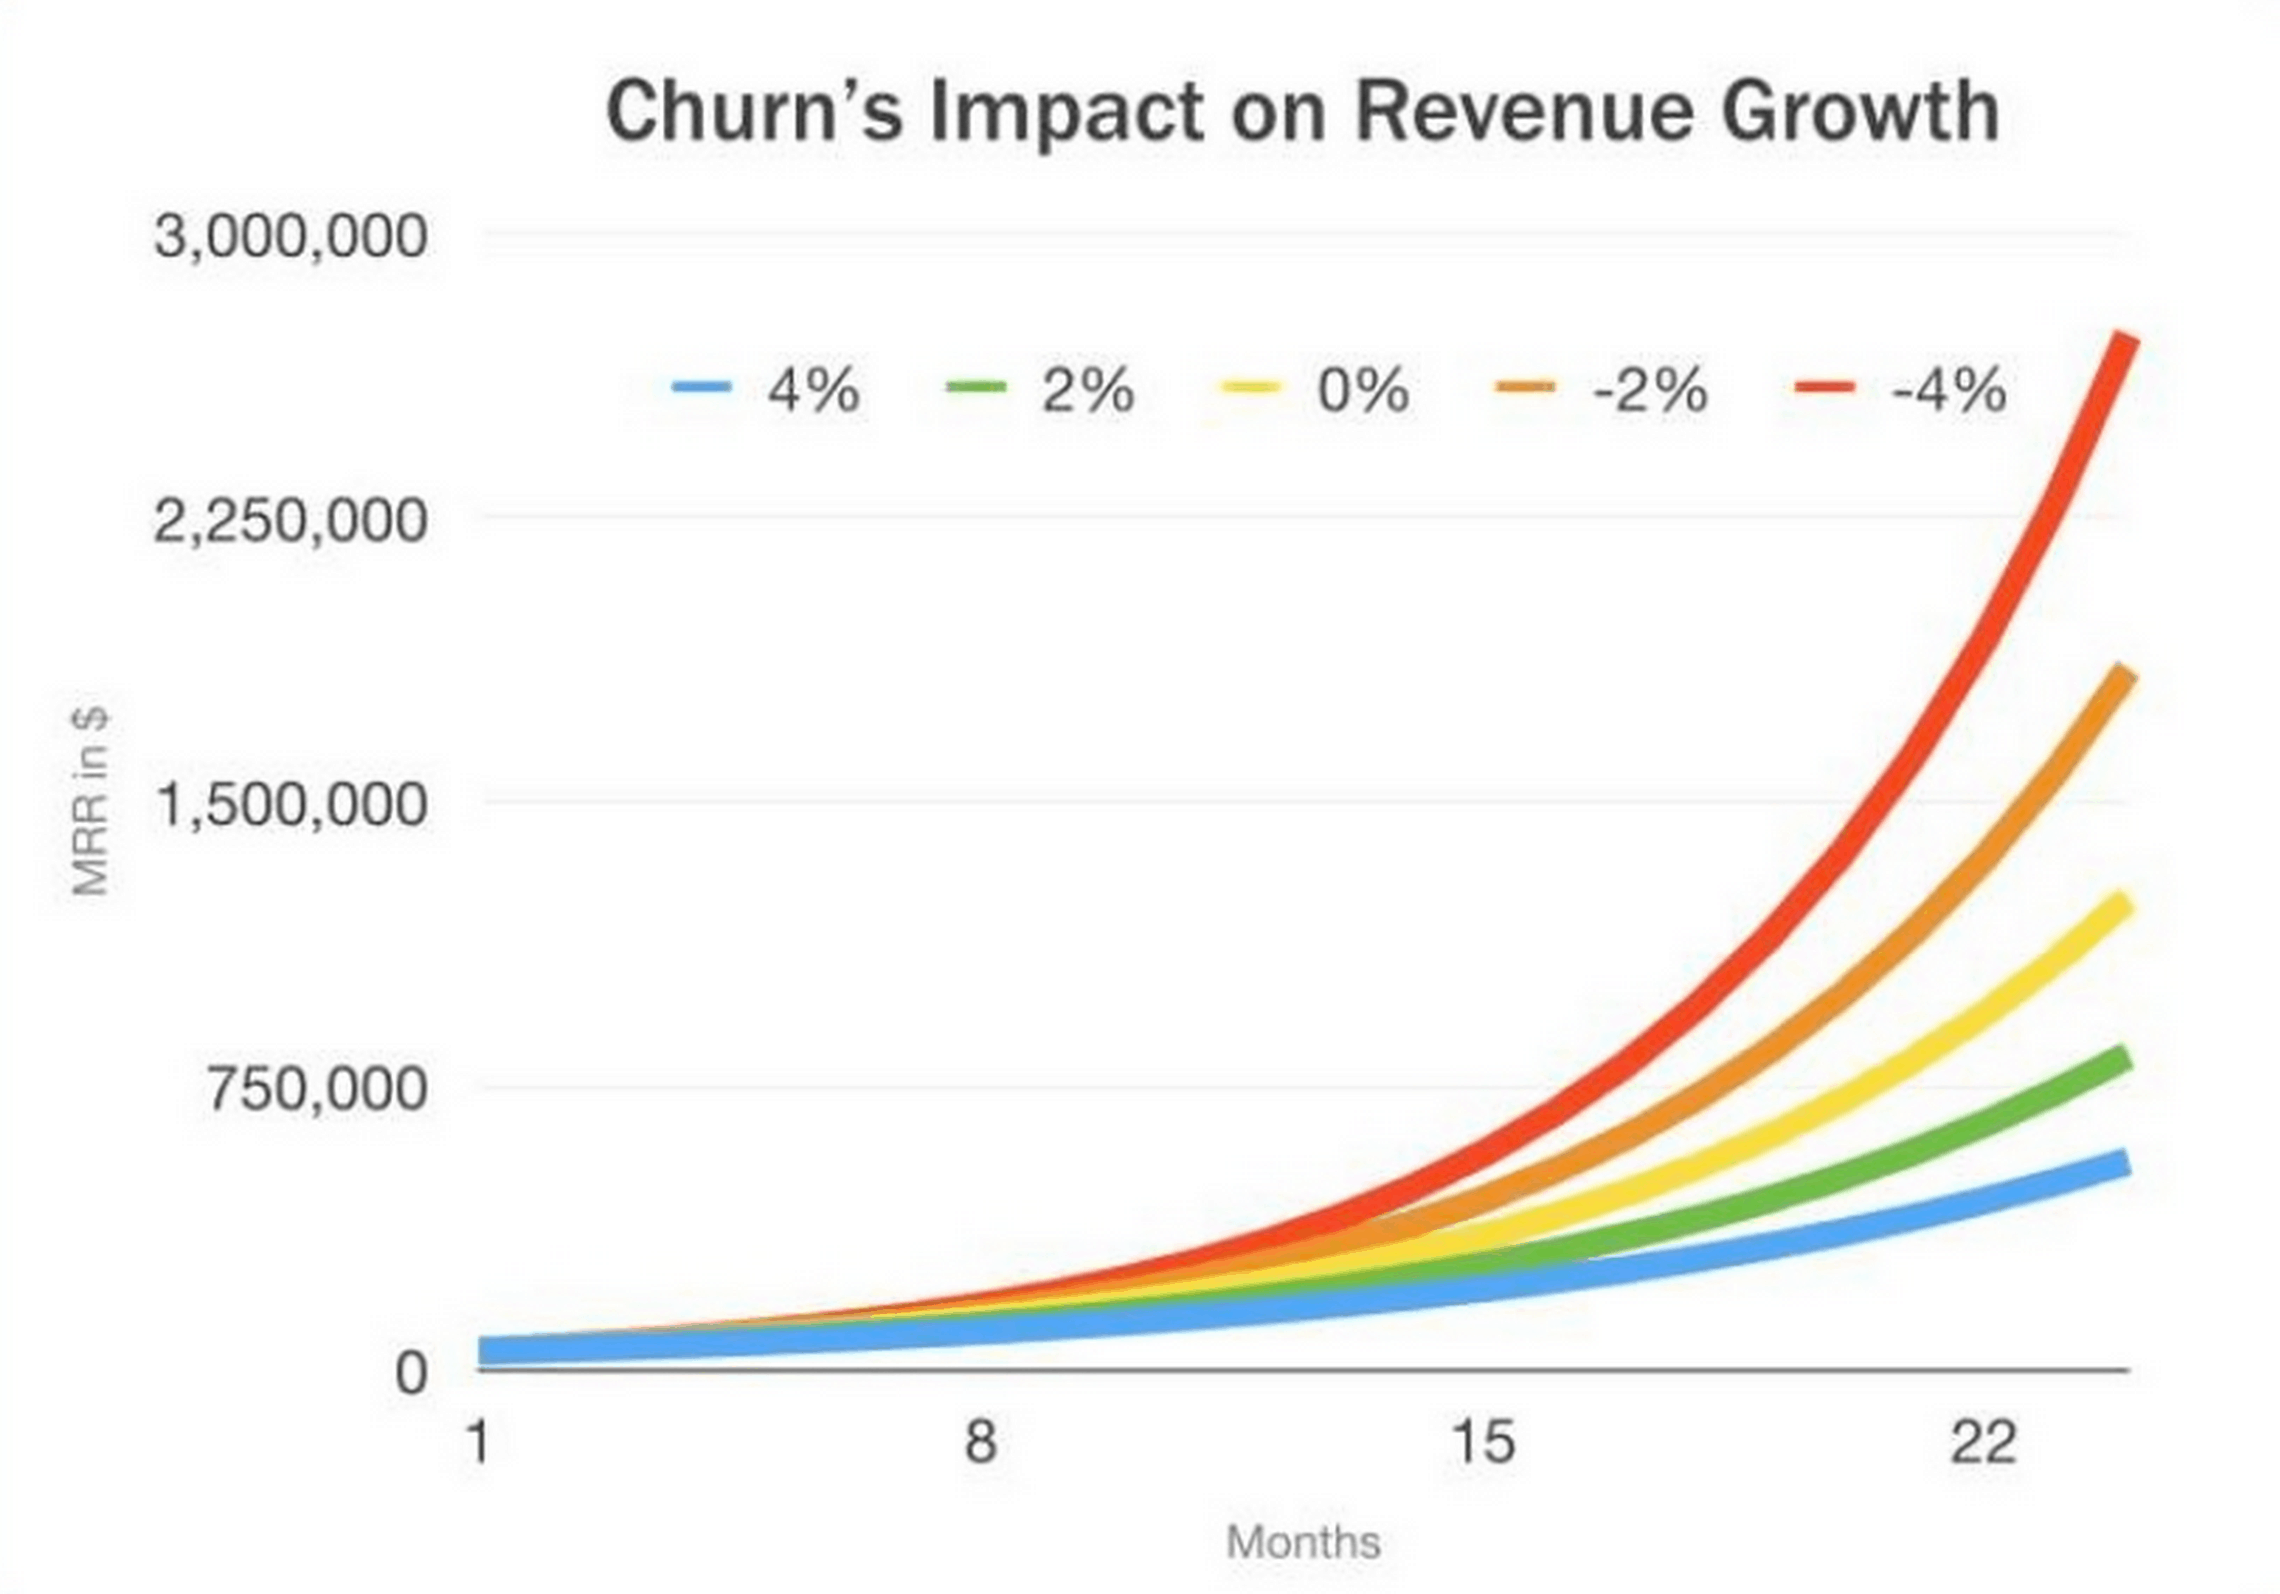 churns impact on revenue growth